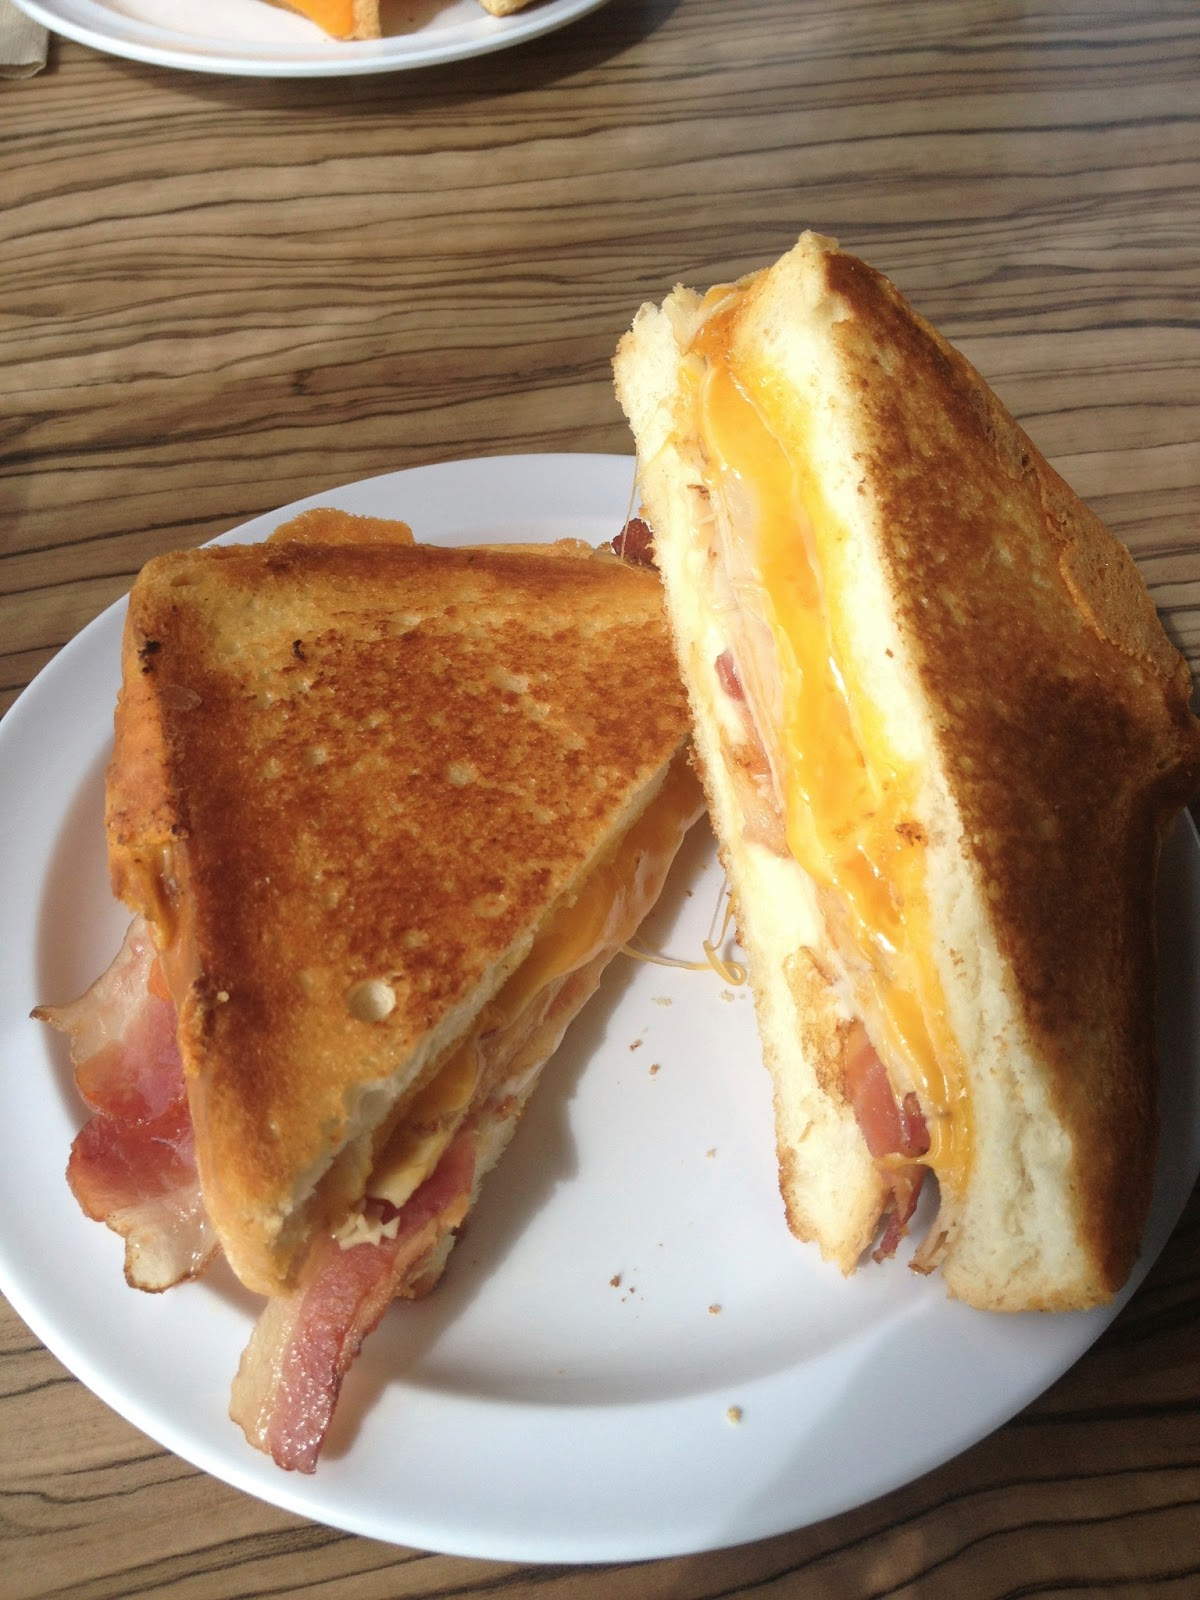 melty way, gourmet grilled cheese, cheese, cheddar cheese, grilled cheese, fast food, restaurant, food chain, american fork